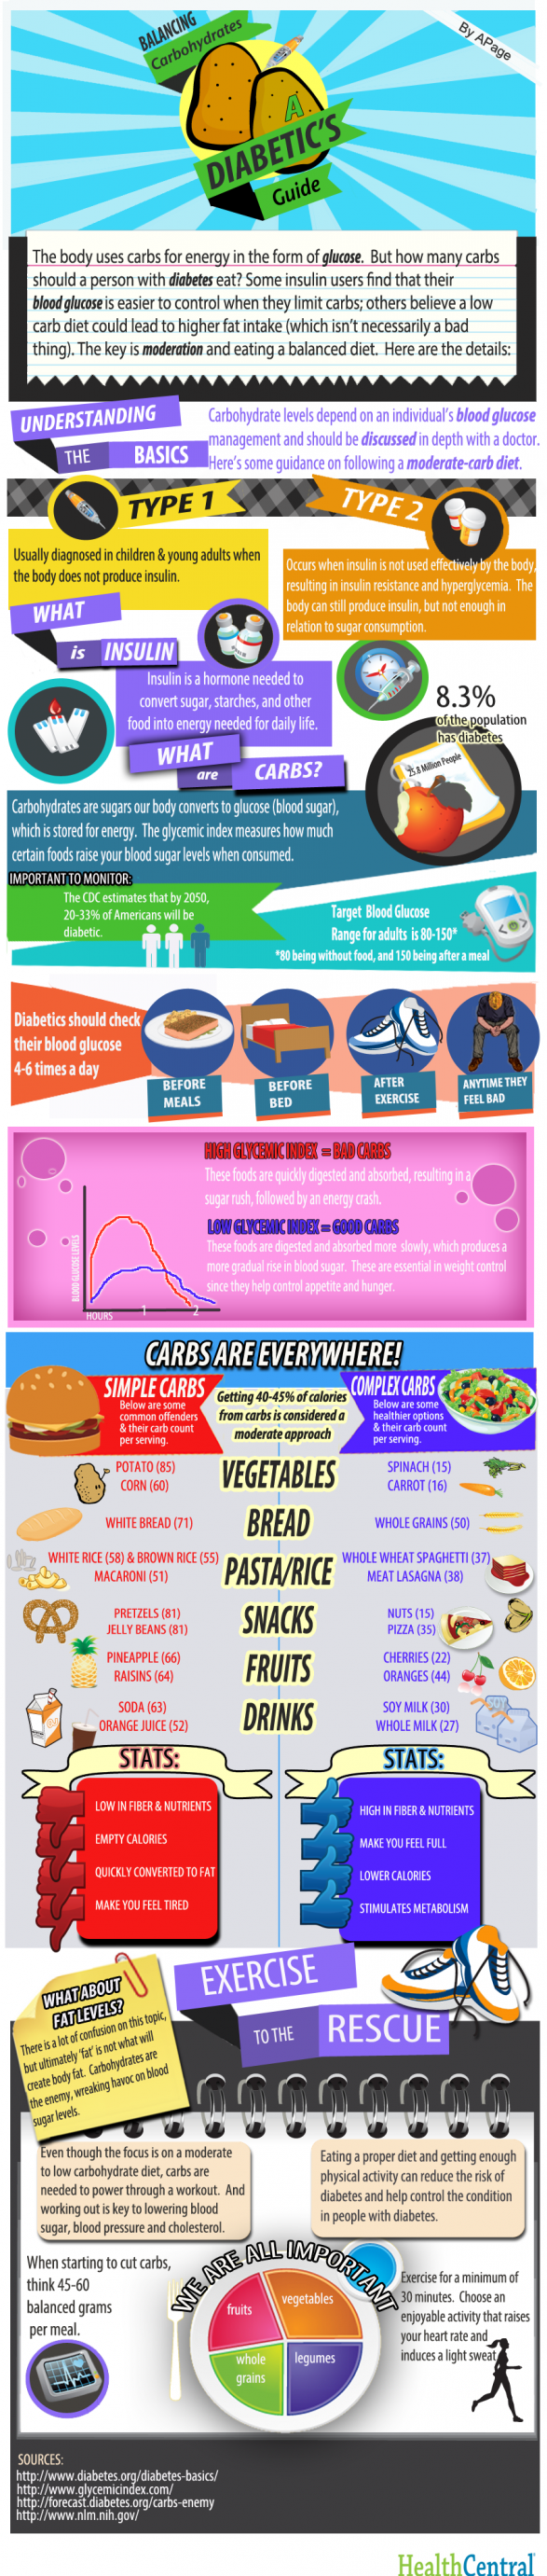 Balancing Carbs: A Diabetic